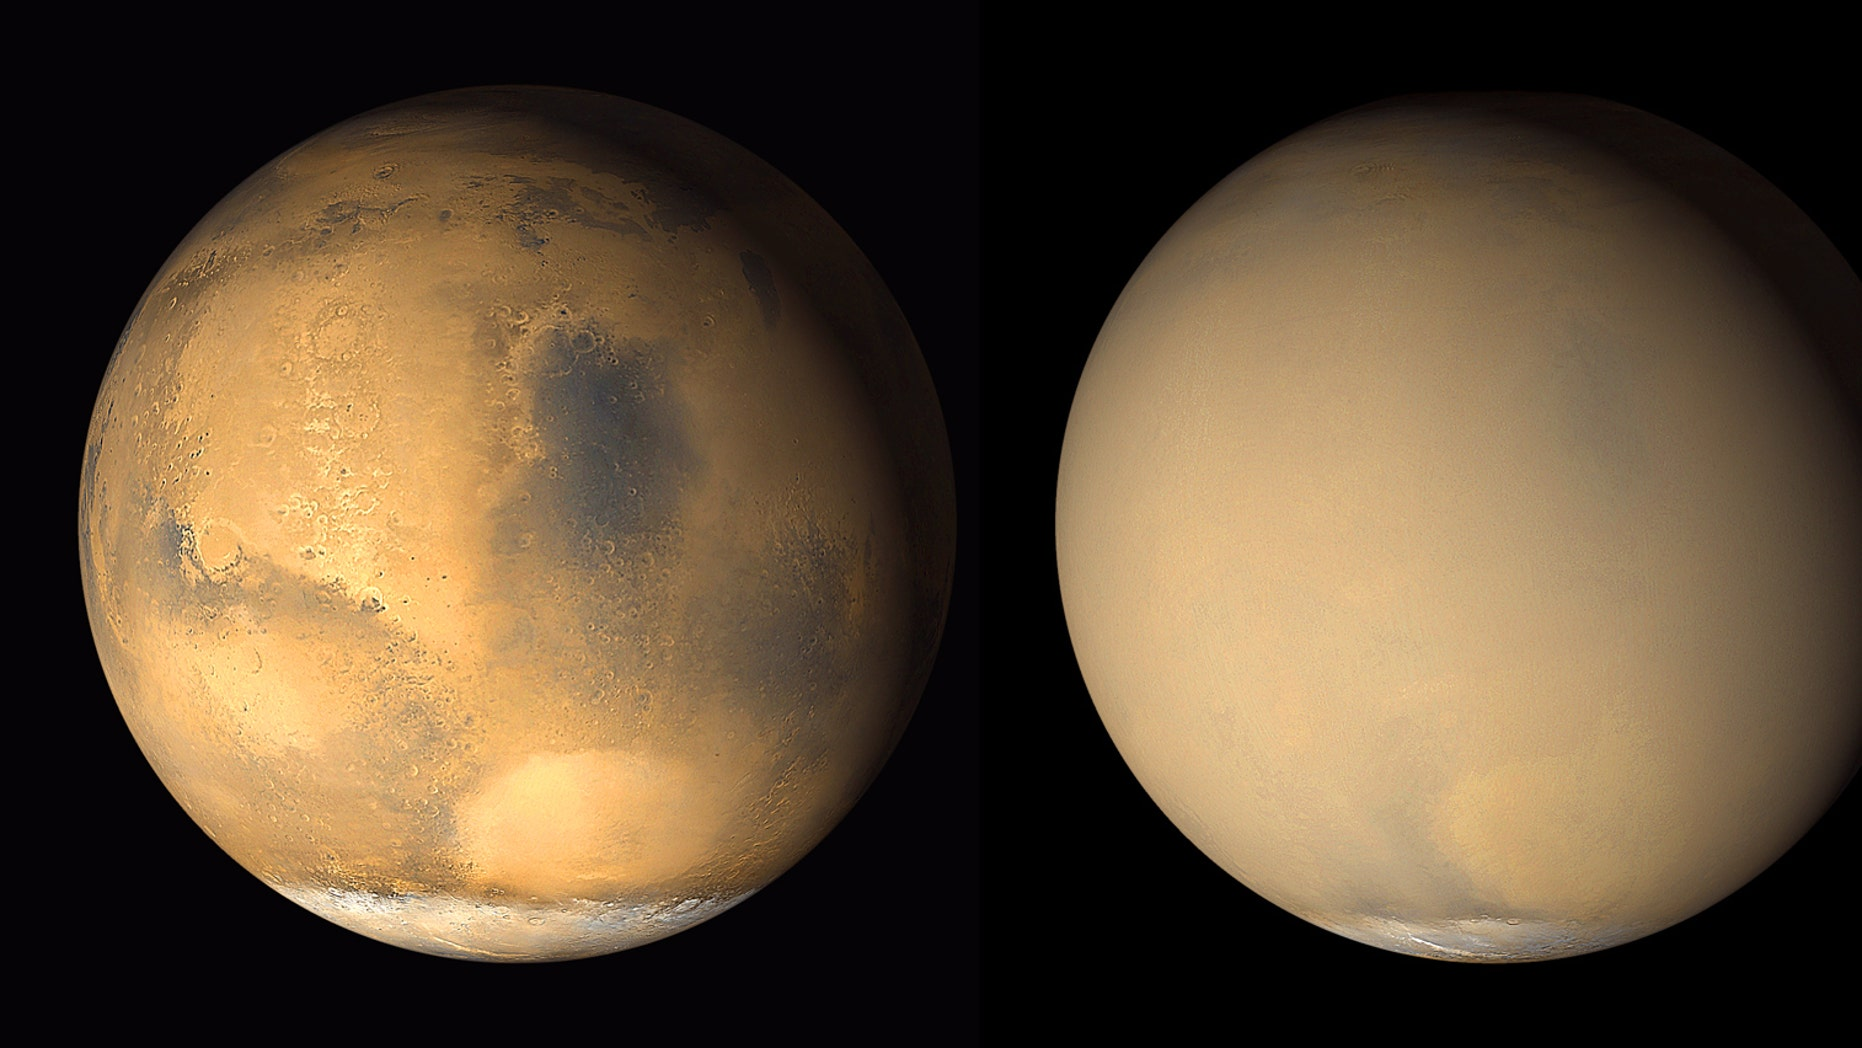 This image illustrates the haze that engulfs Mars during major dust storms. These two images were taken in 2001, about a month apart.